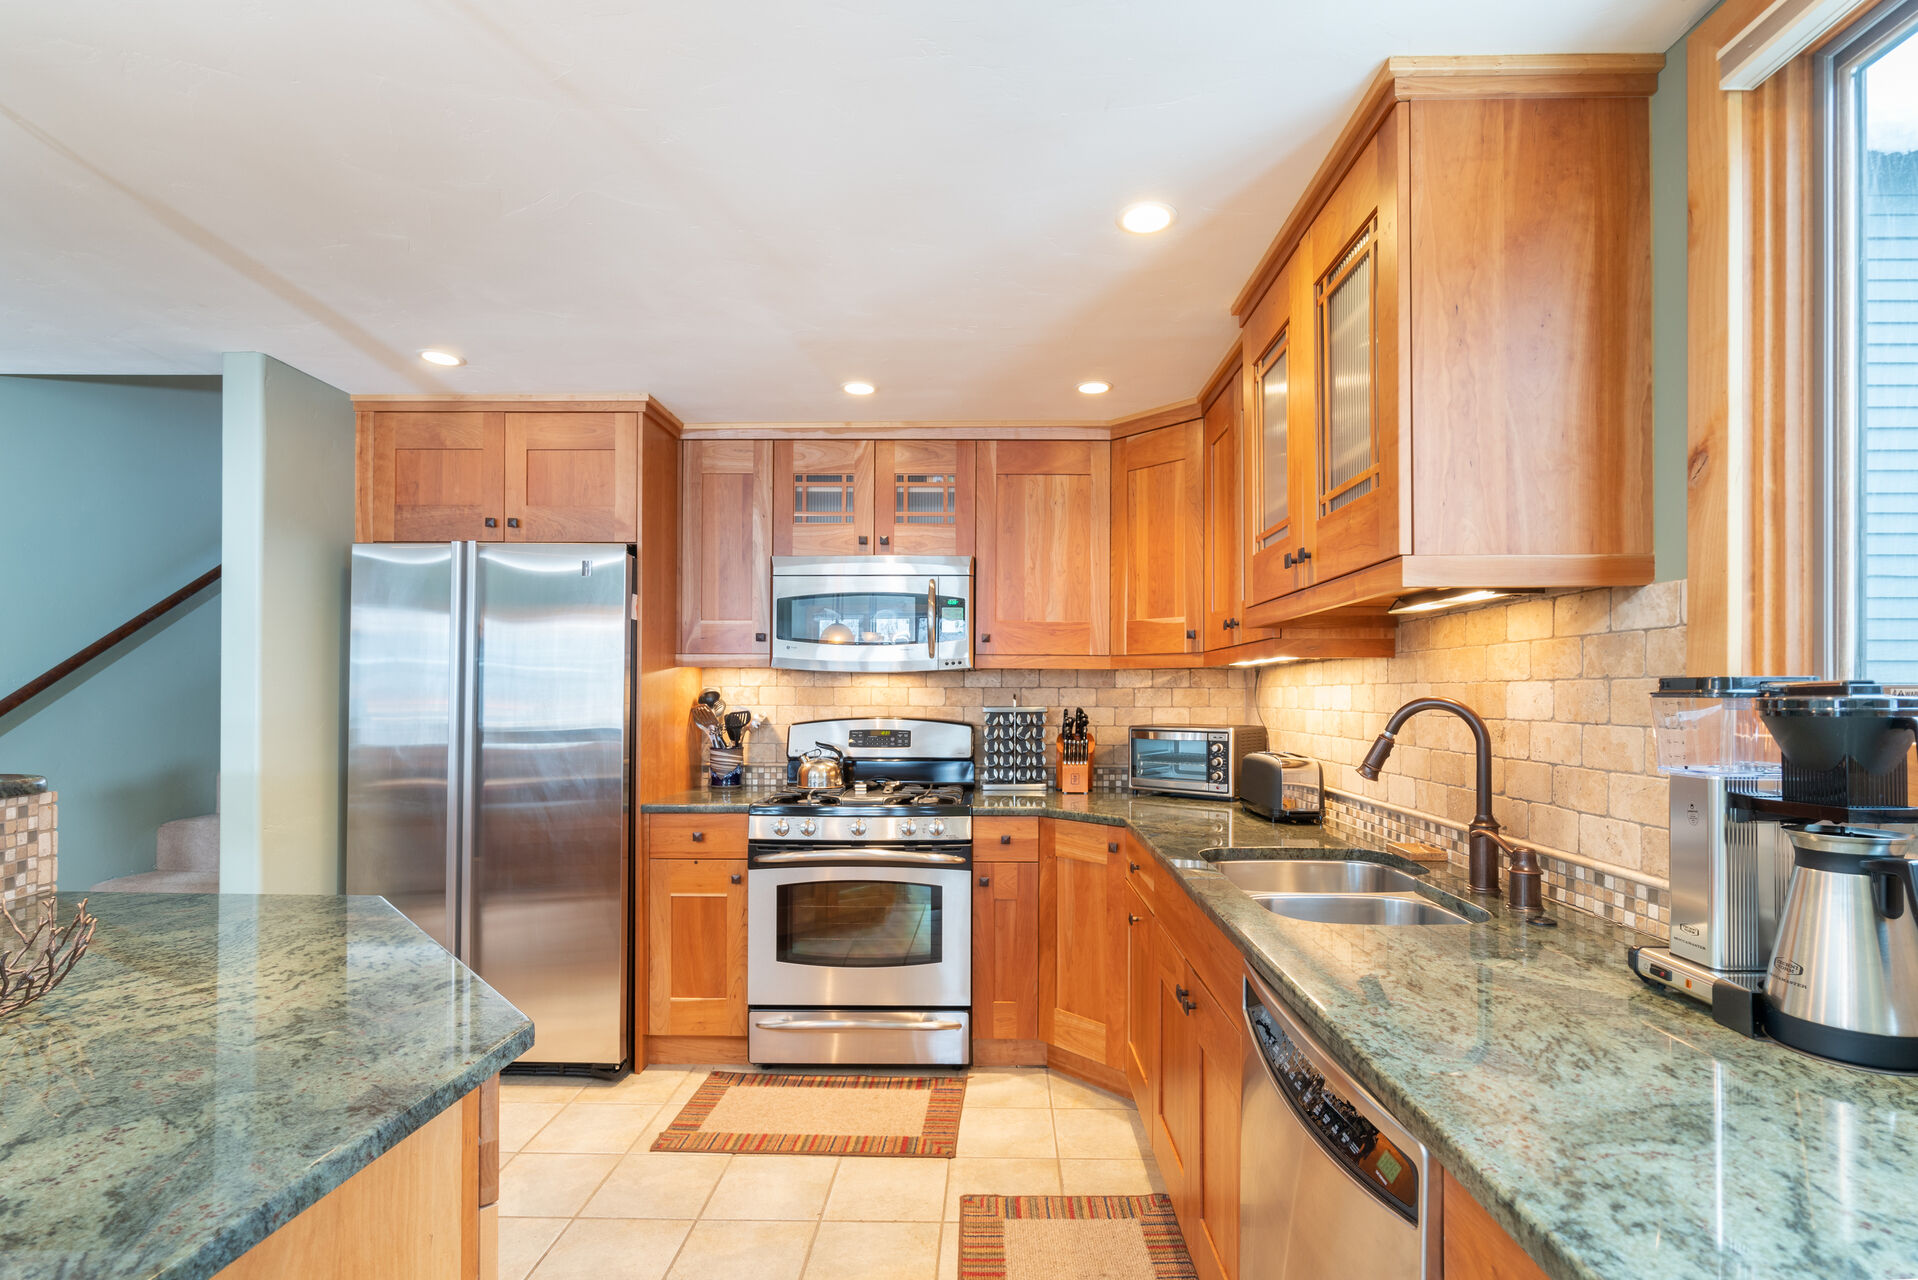 Stainless steel oven, microwave, and fridge of the kitchen.